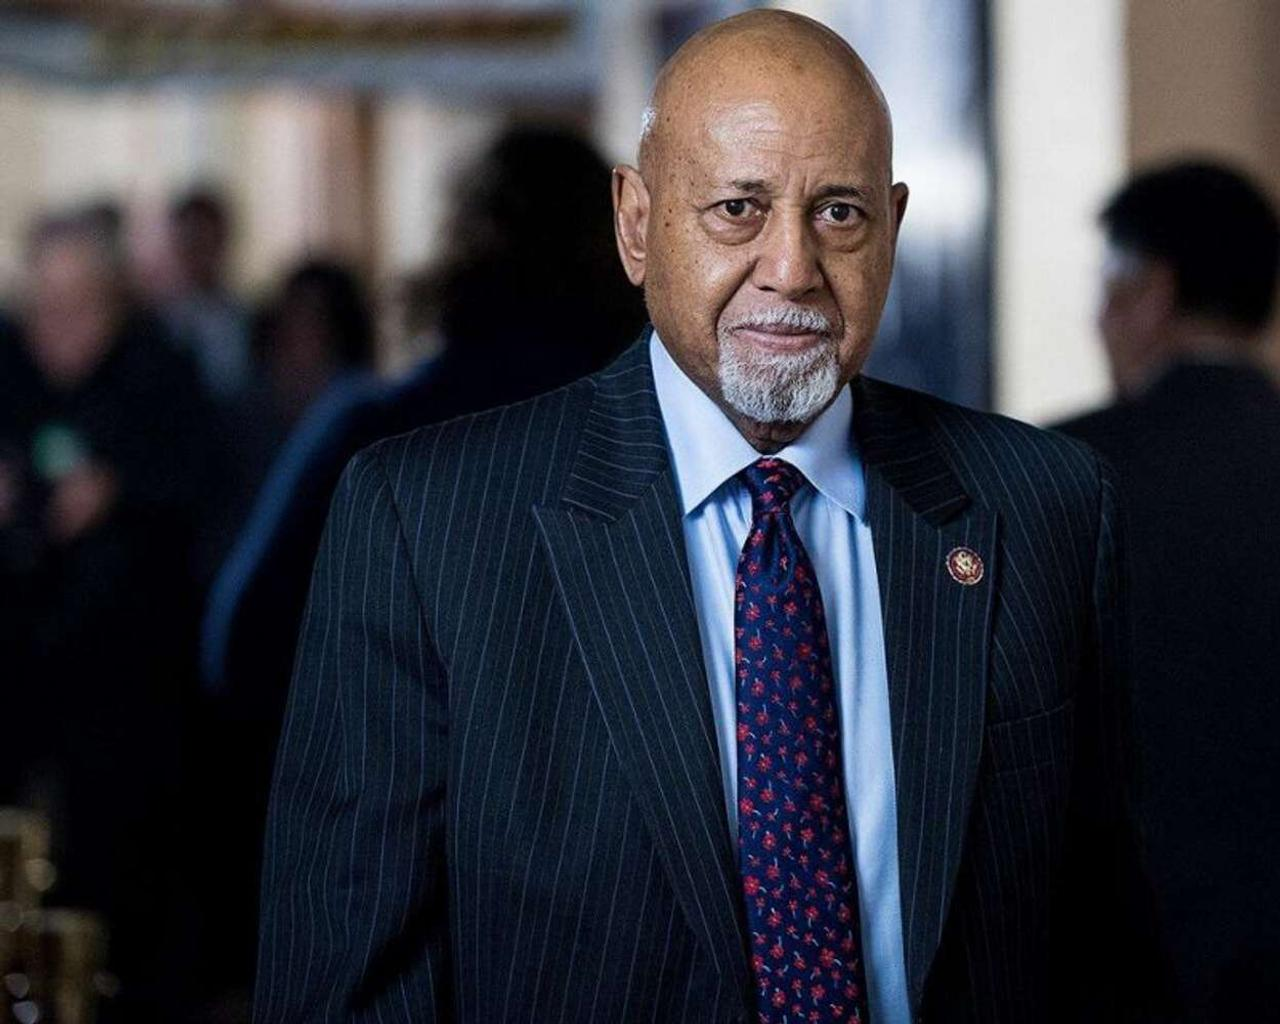 Alcee Hastings, a longtime Florida congressman, died at the age of 84